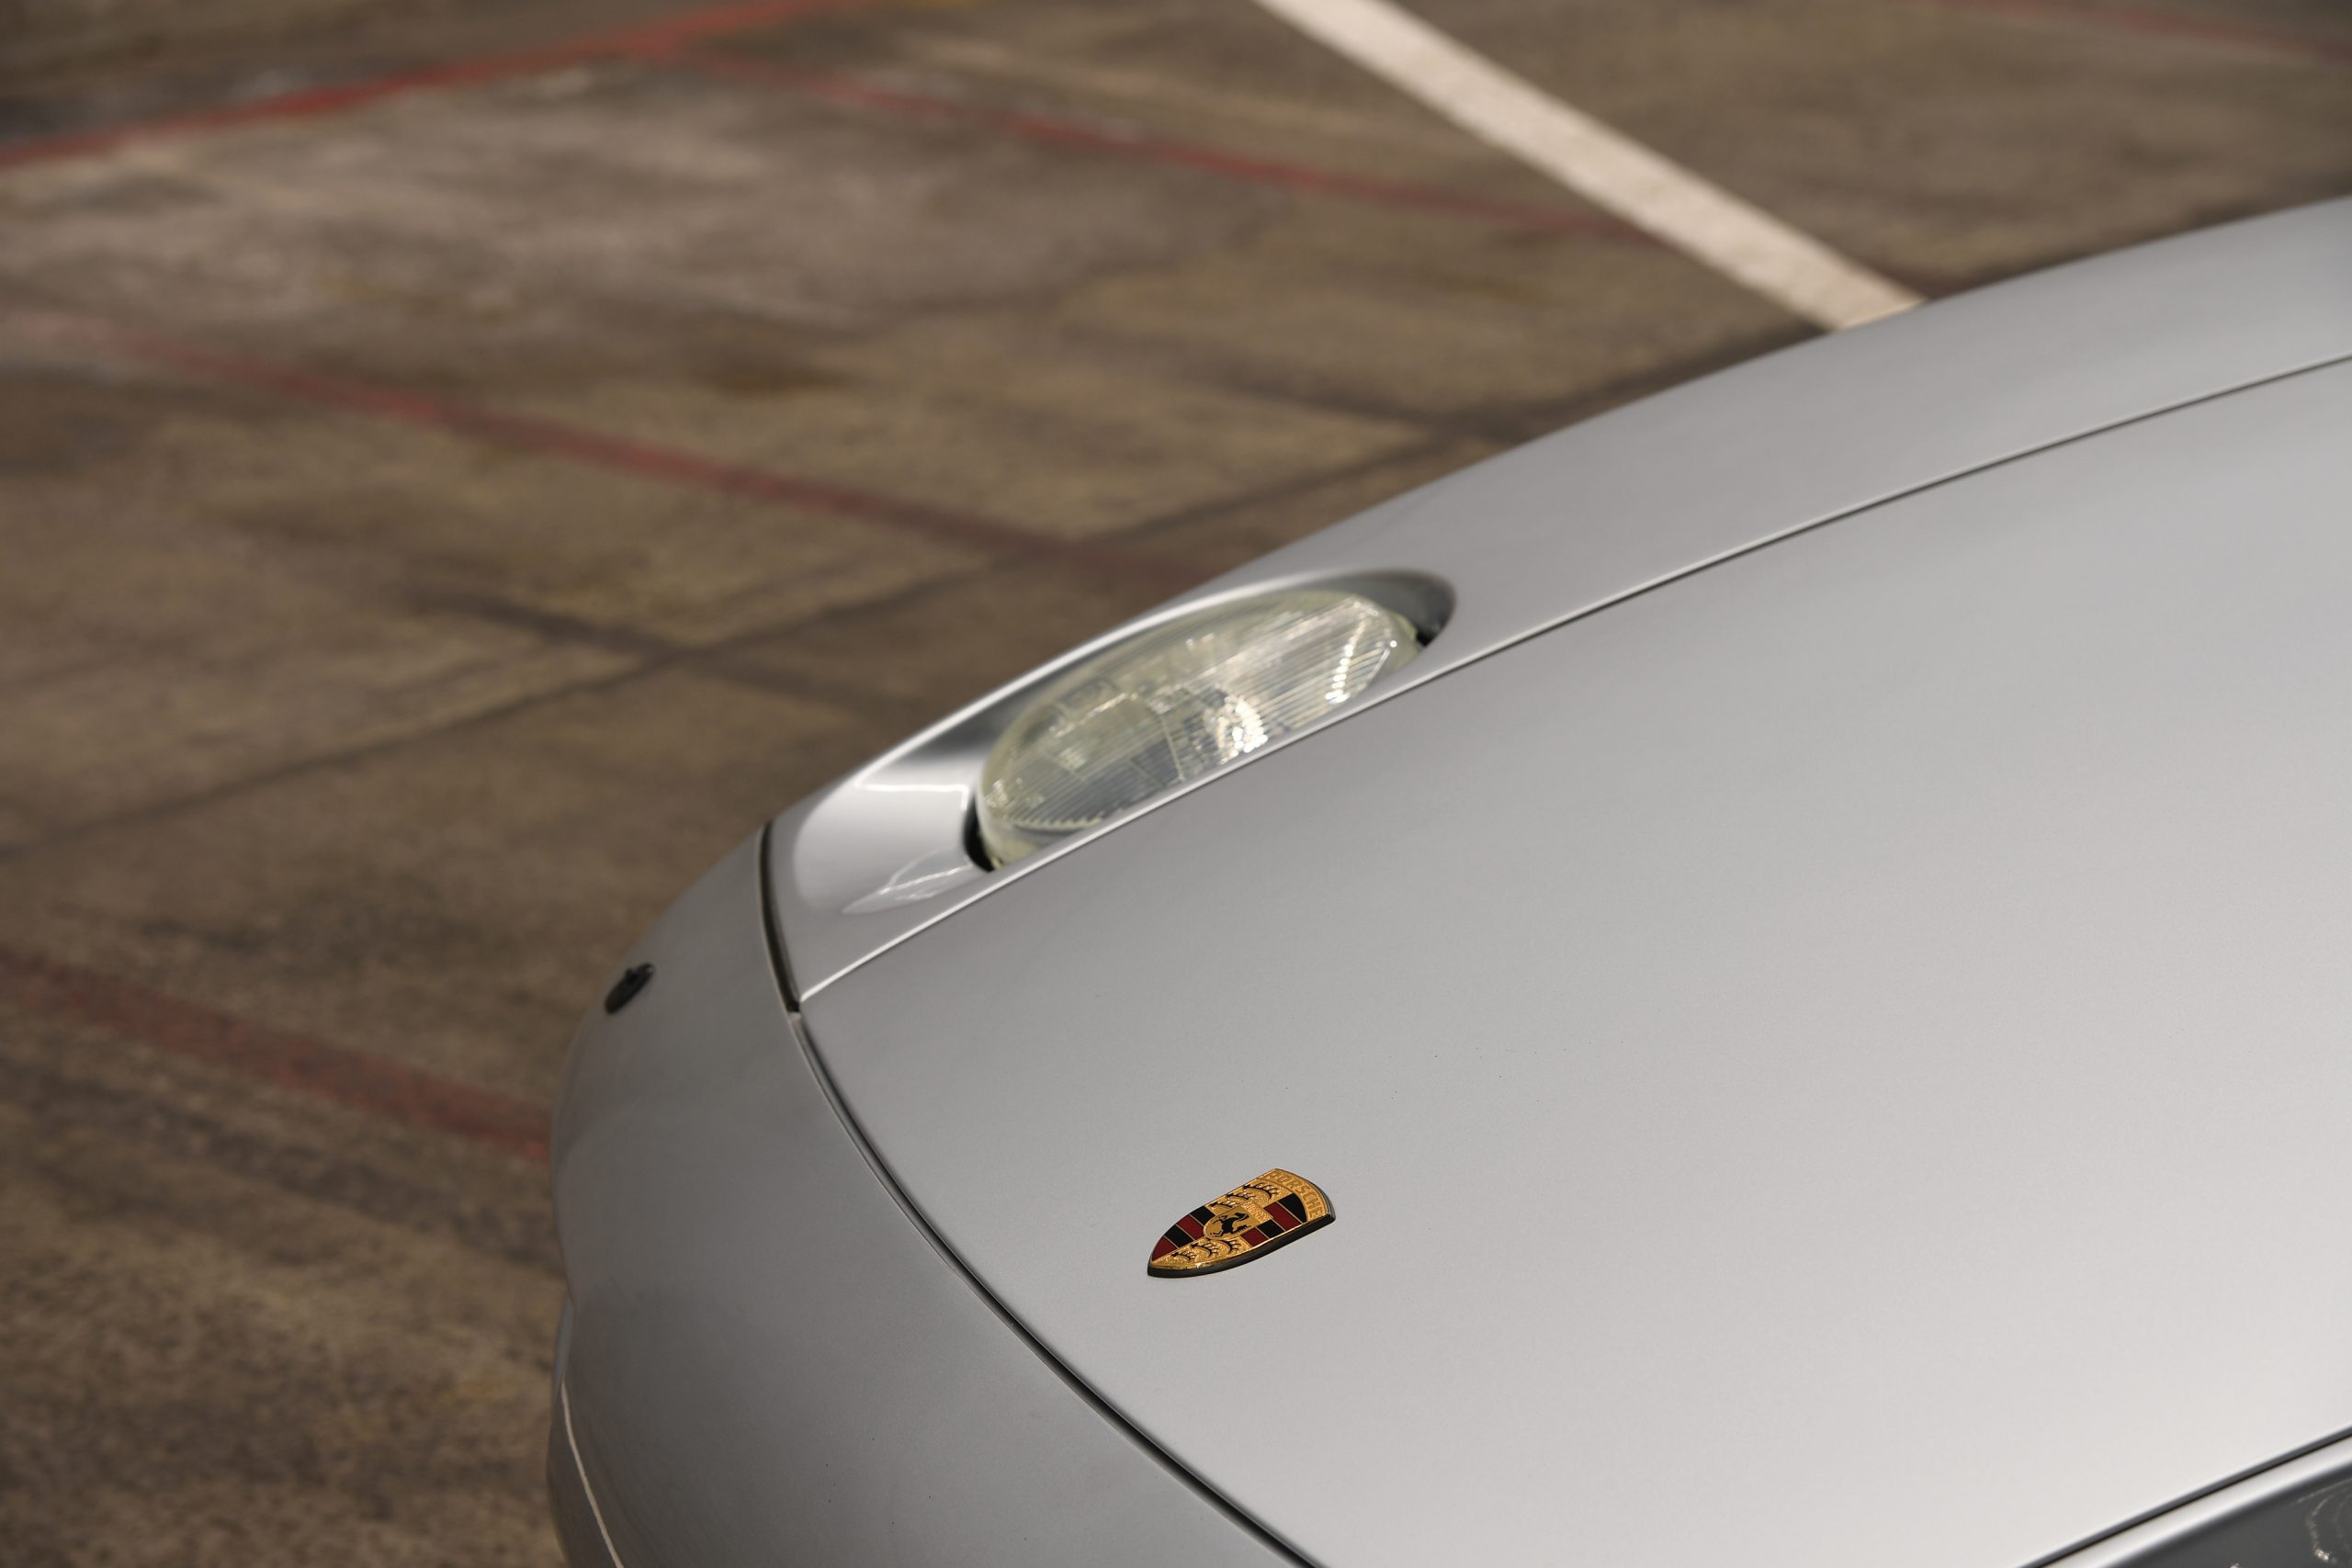 1992 Porsche 928 GTS Headlight